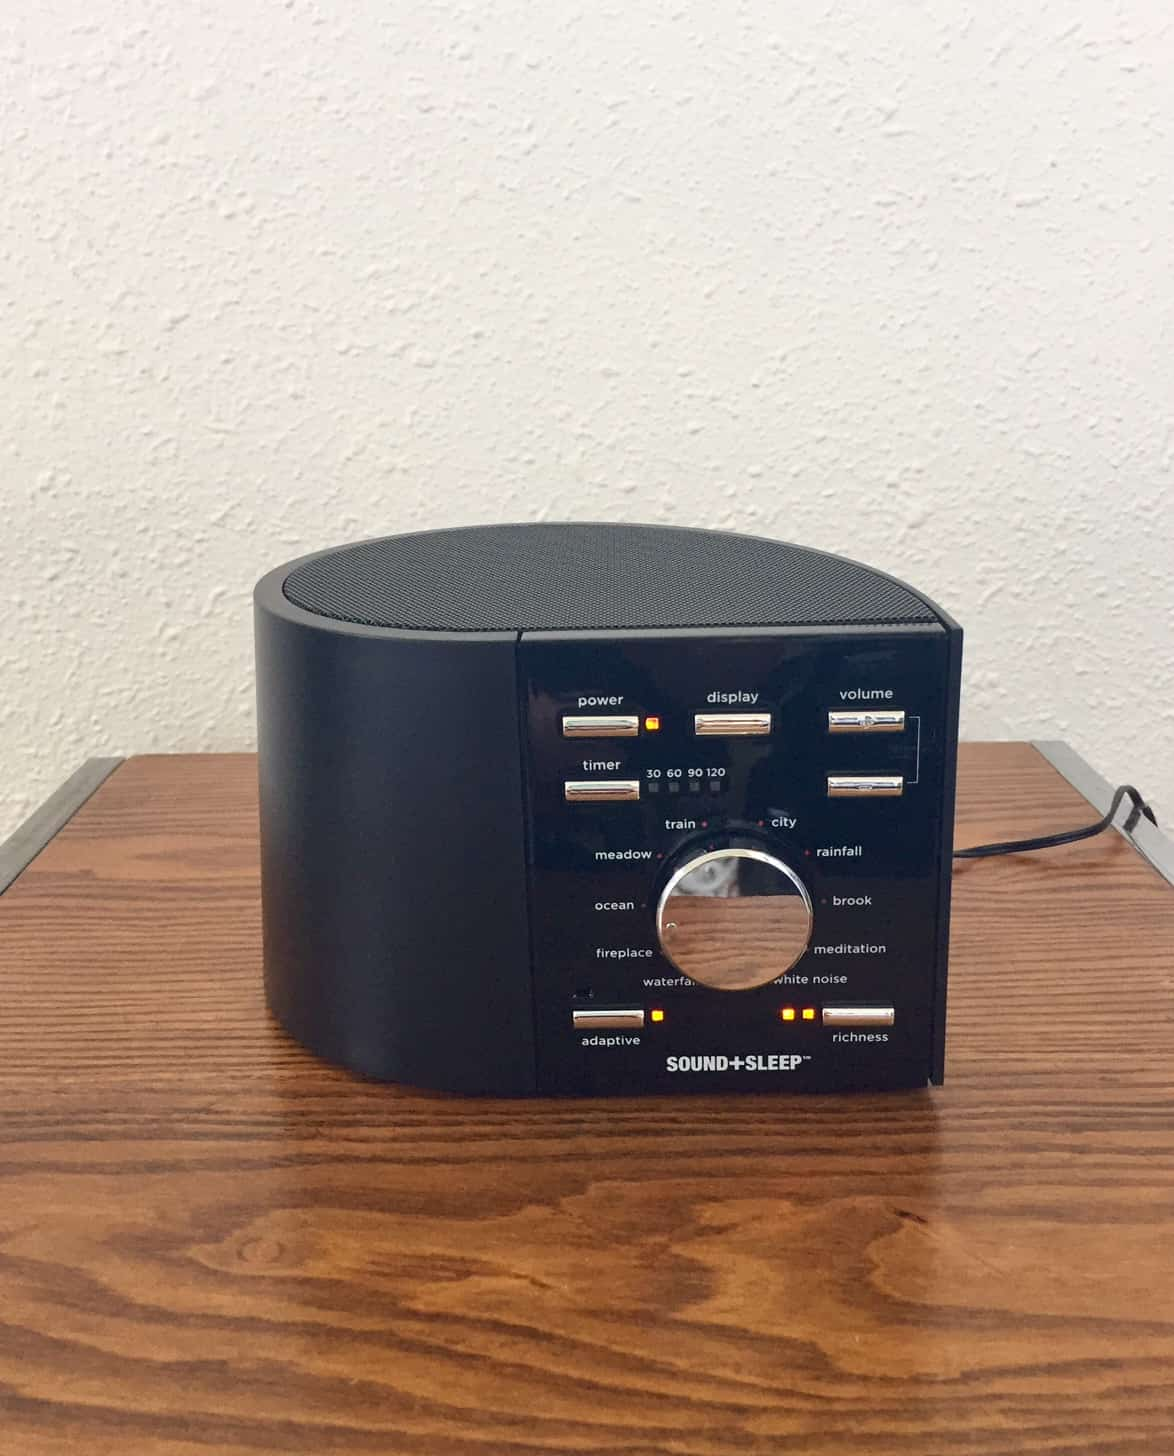 SoundSleepSoundMachineReview Best Reviewed White Noise Sound Machines